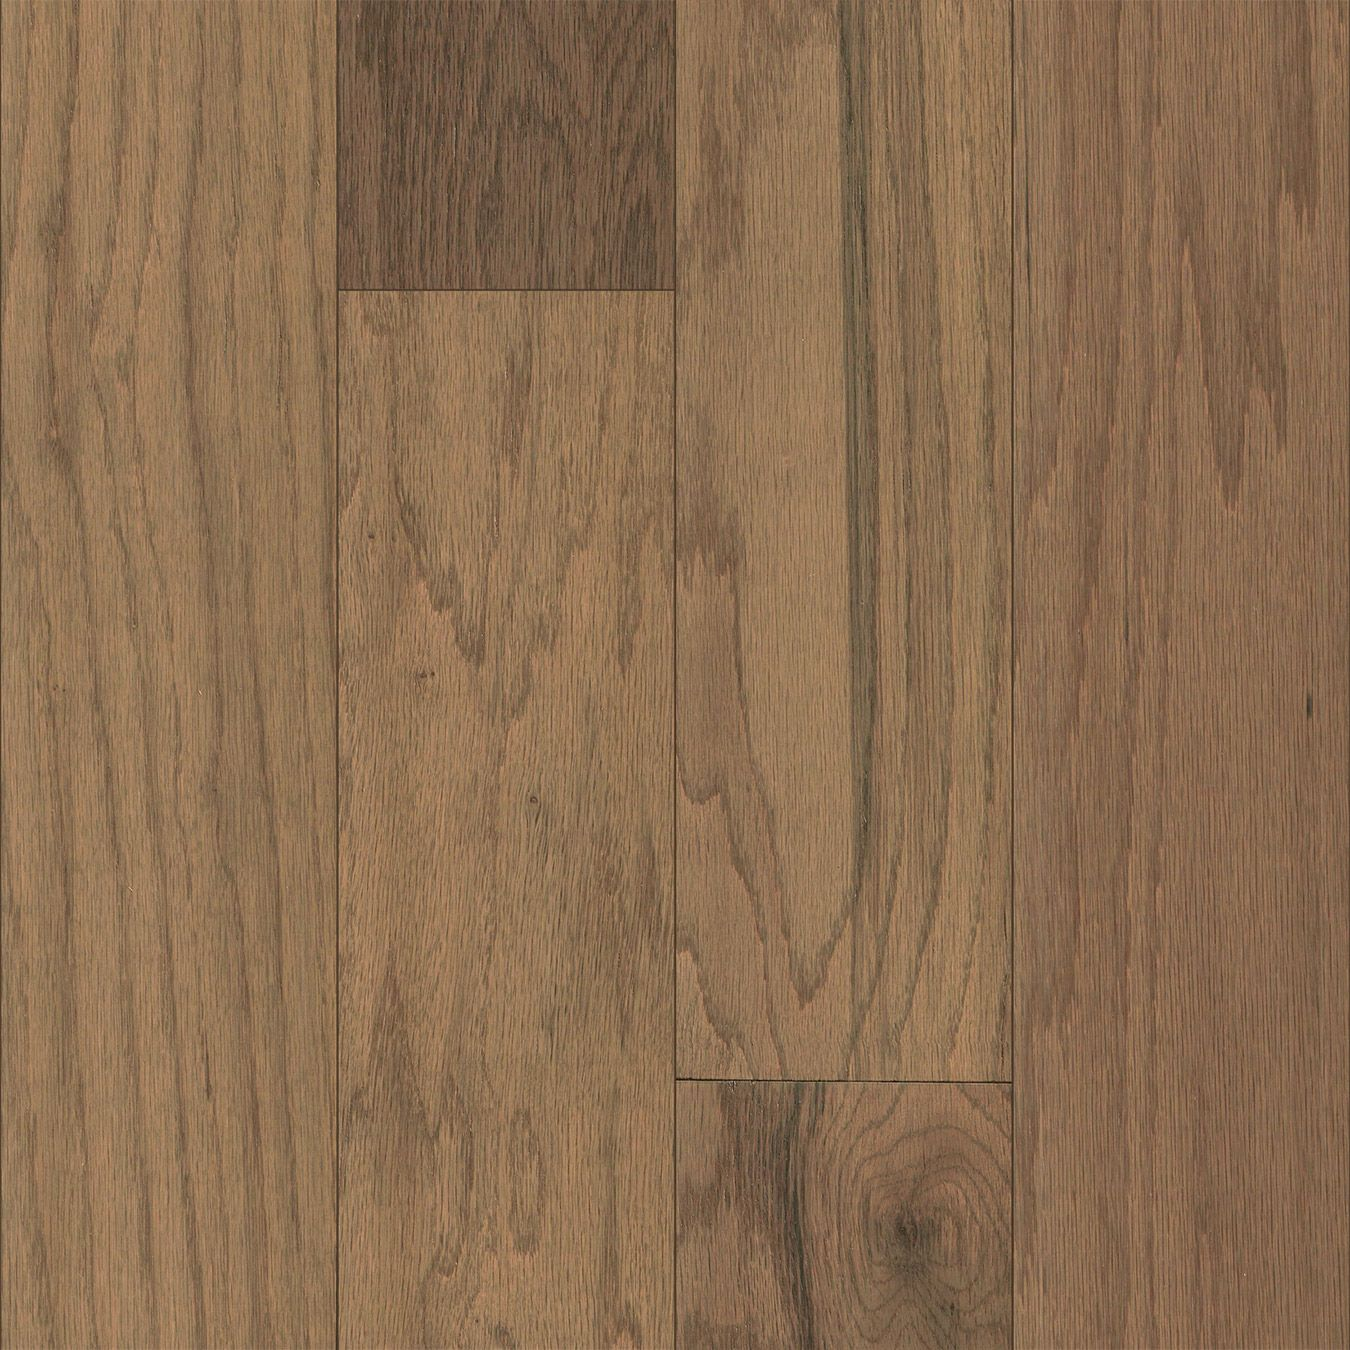 Kingsmill White Oak Frost 5 Wide 1 2 Thick Engineered Hardwood Floor Hardwood Flooring Engineered Hardwood